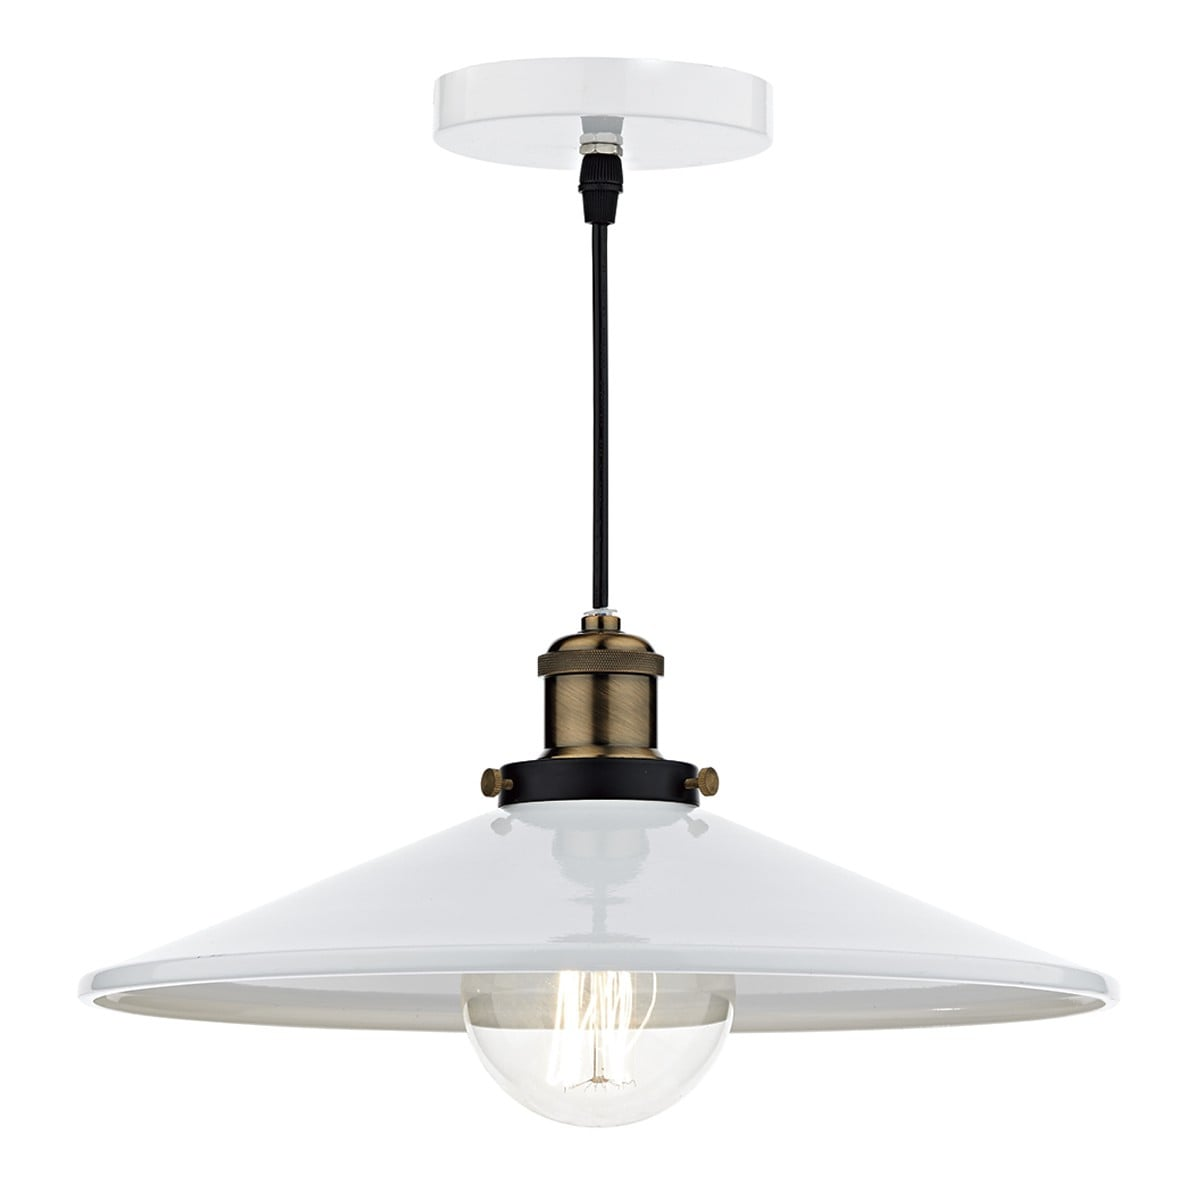 Dar ROO012 Roof 1 Light Pendant in White